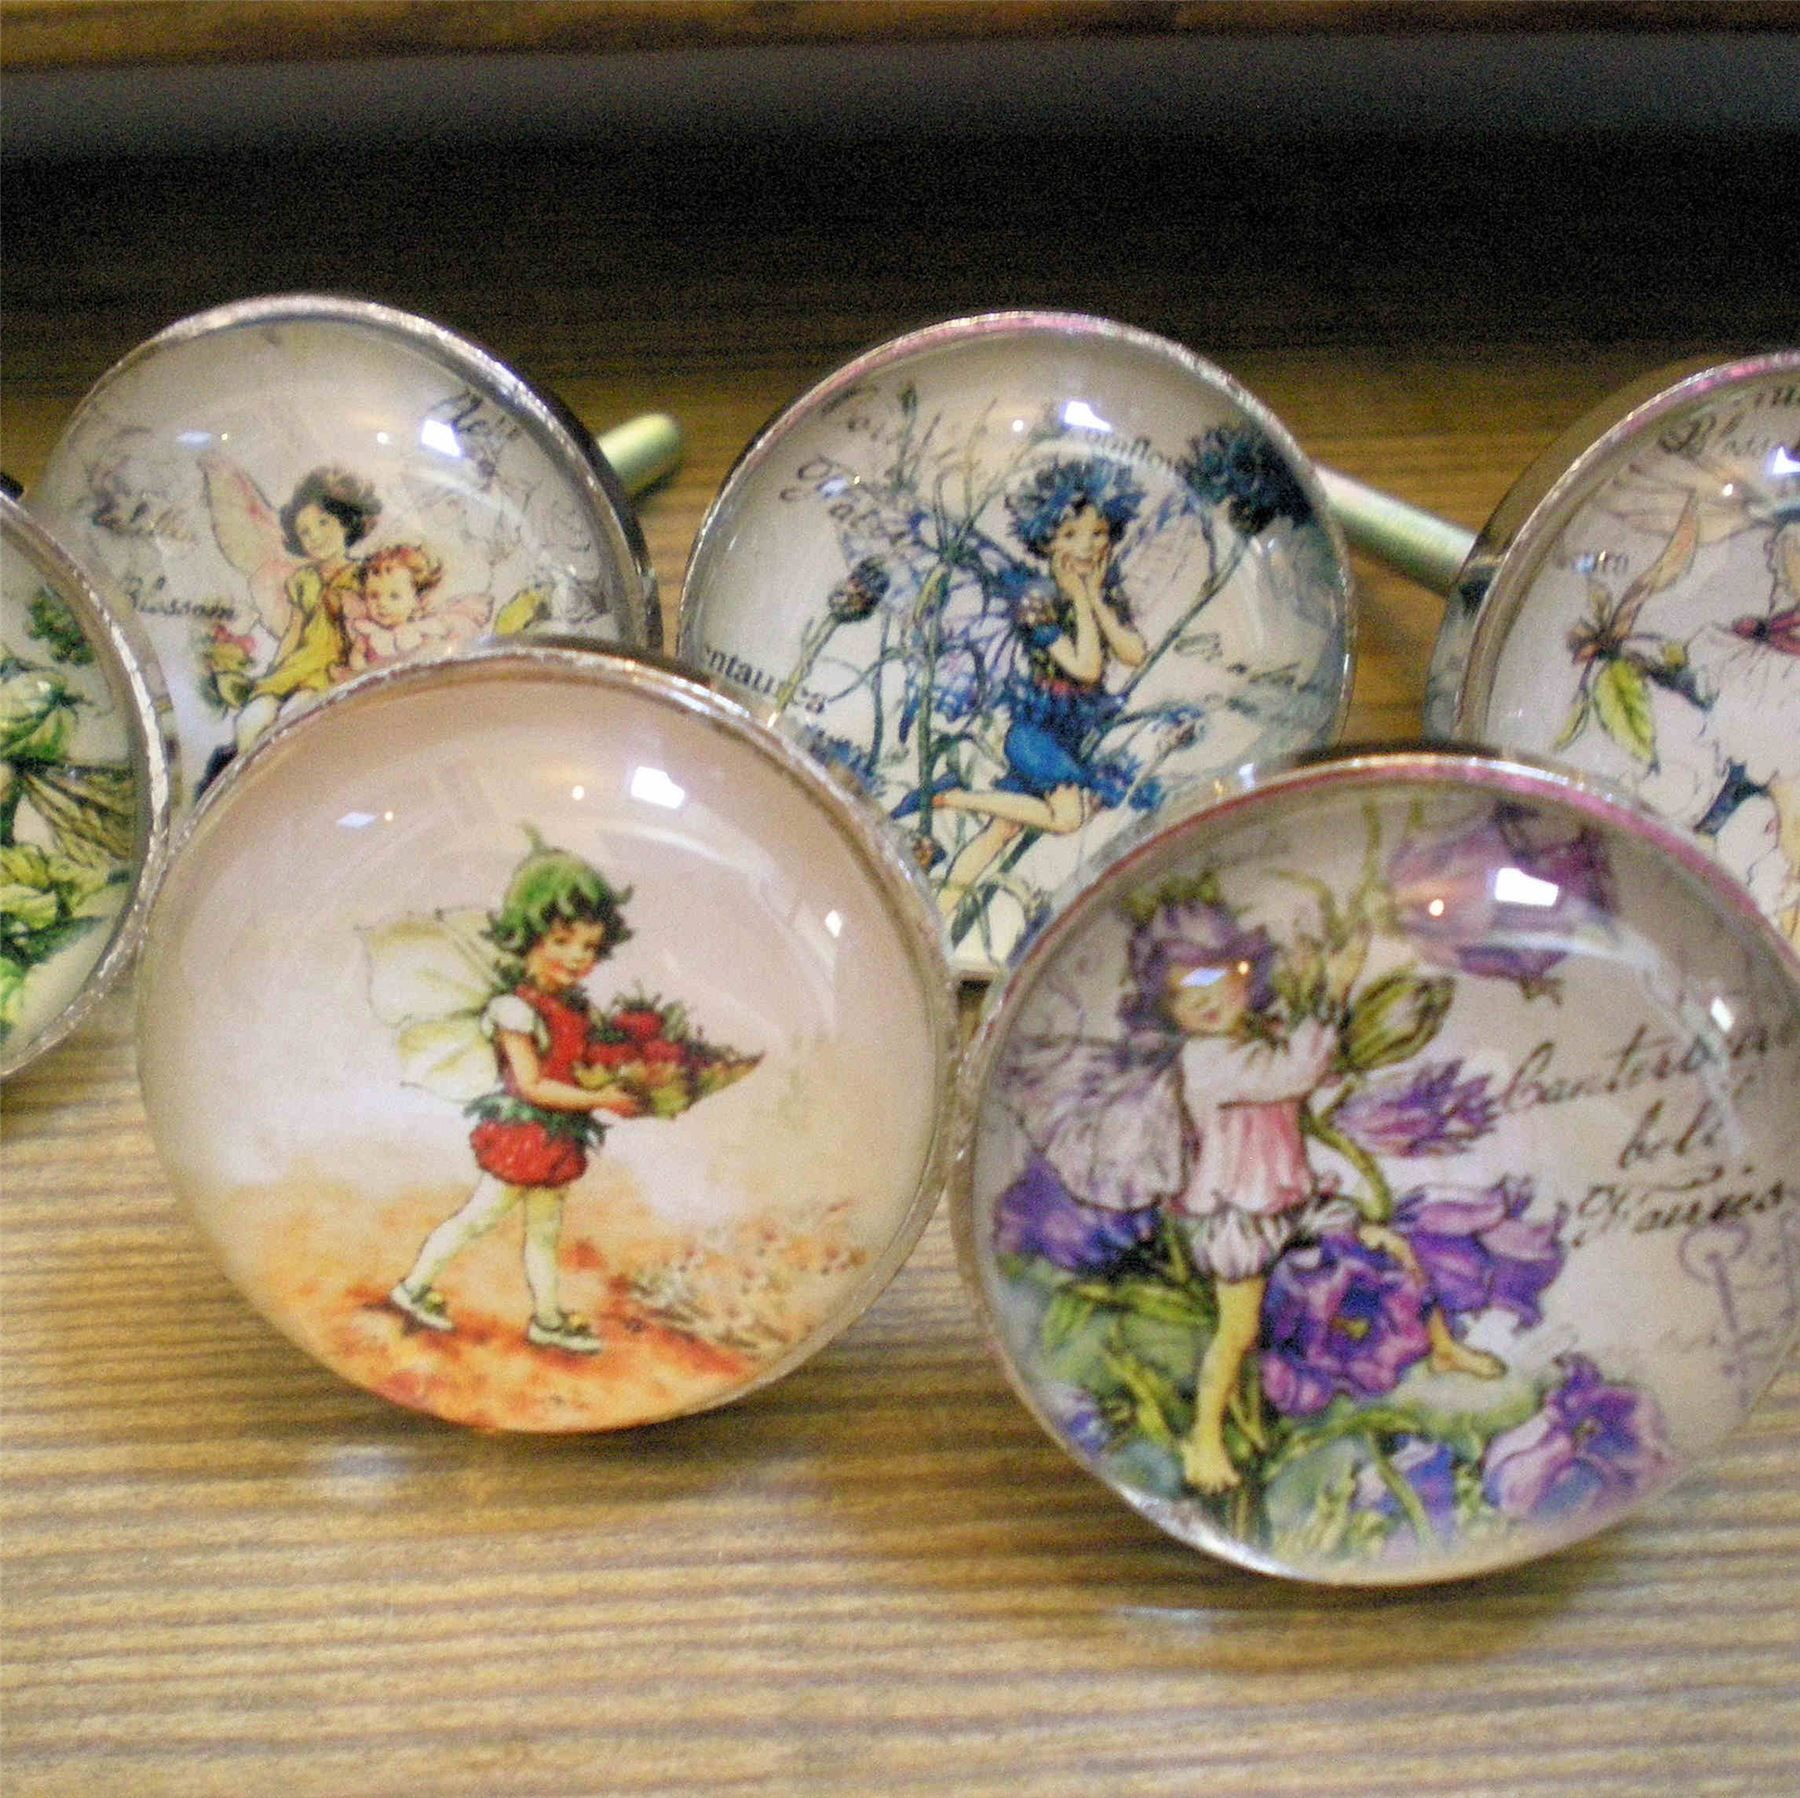 Flower fairy glass door knobs girls bdrm furniture drawer pulls ...